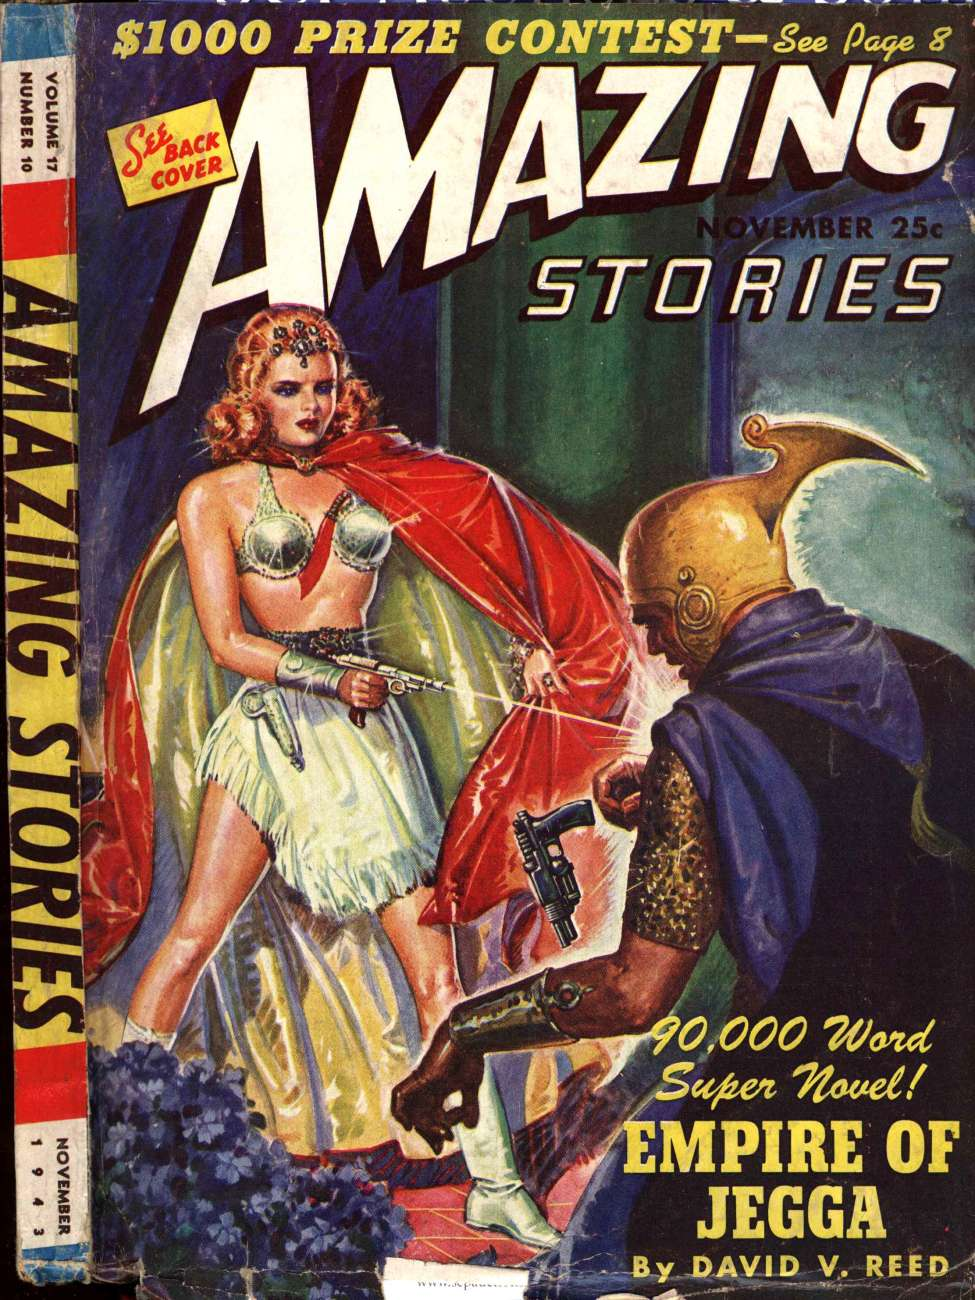 Comic Book Cover For Amazing Stories v17 10 - Empire of Jegga - David V. Reed